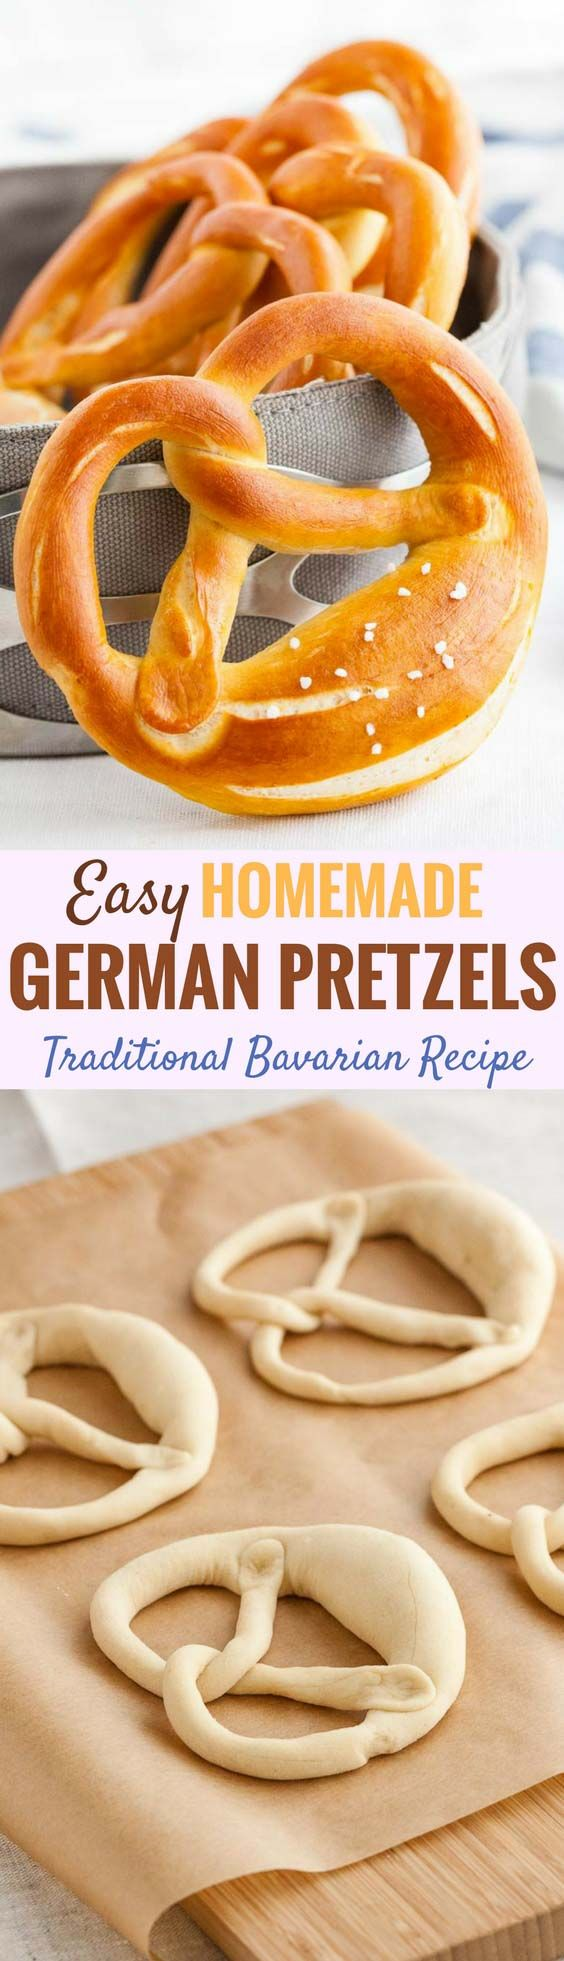 These Bavarian pretzels are a very popular snack in Germany and perfect for your next Oktoberfest party! They taste delicious dipped incheese sauce and are easy to make at home with simple ingredients. This authentic German Pretzel Recipe makes enough for a crowd as an appetizer. #germanpretzels #germanrecipes #softpretzels #pretzels #oktoberfestrecipes